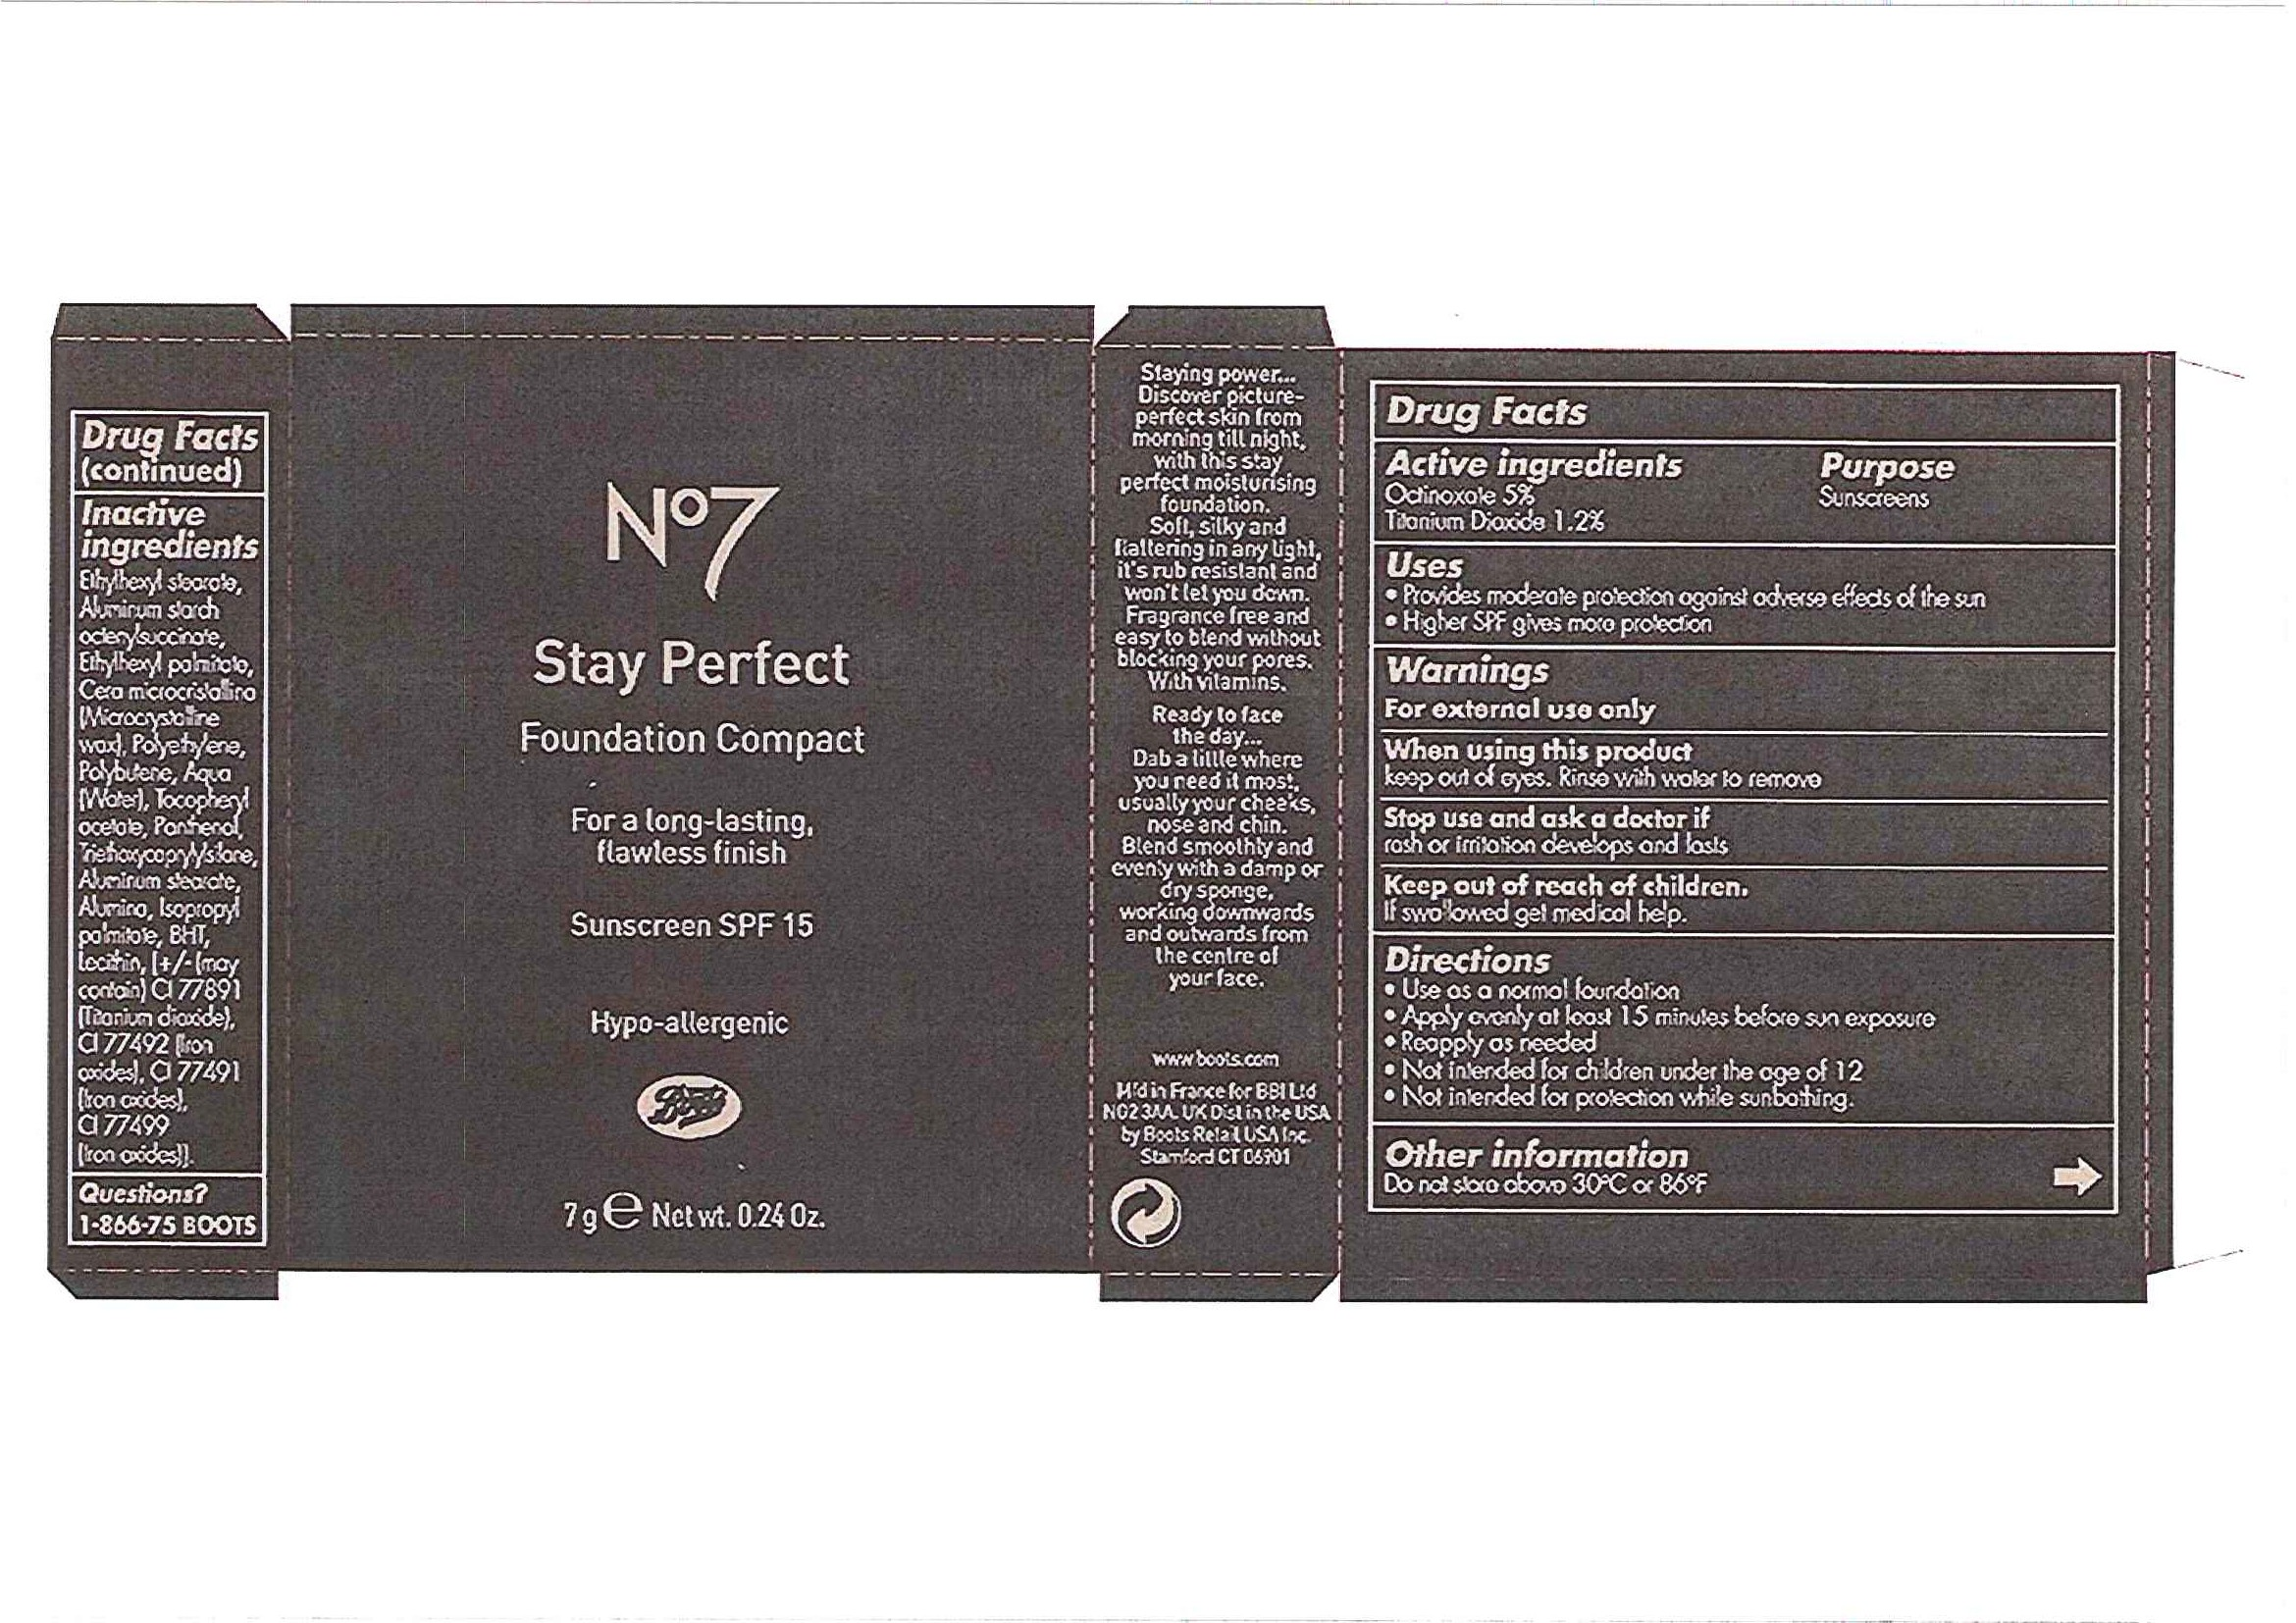 No7 Stay Perfect Foundation Compact Sunscreen Spf 15 Sandstorm Breastfeeding